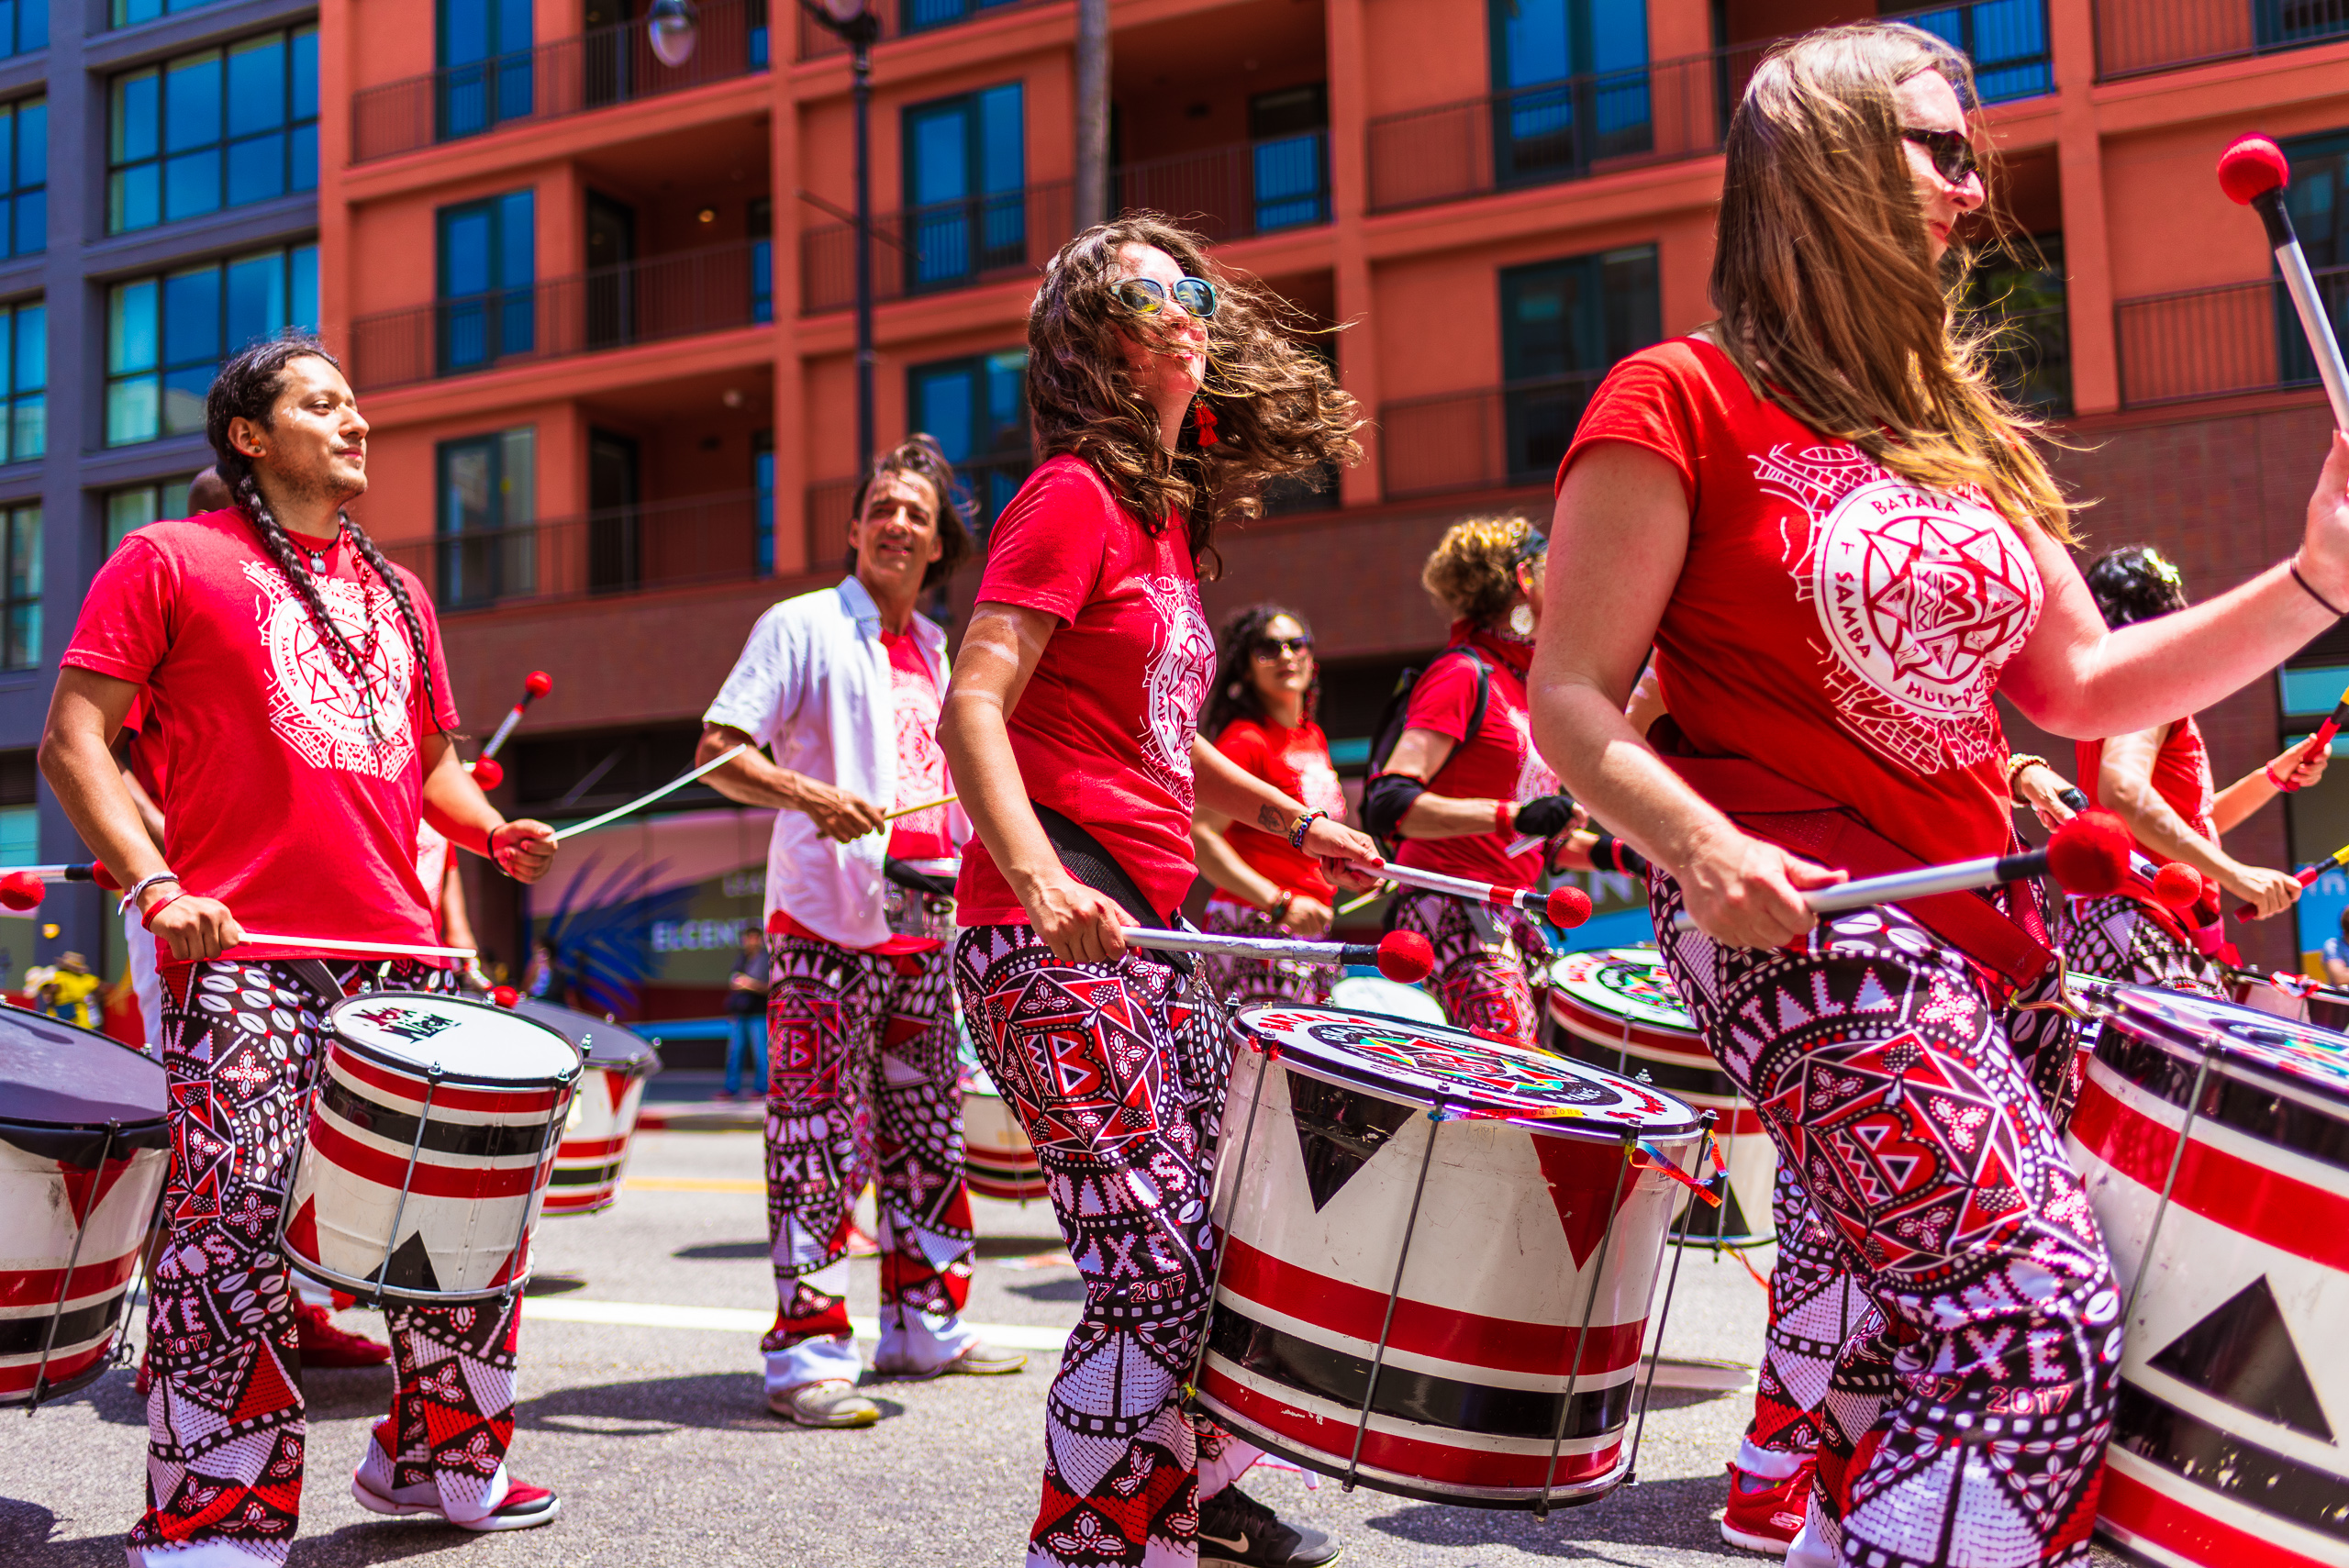 """Drummers from Batala Los Angeles and Batala Hollywood march down Hollywood Blvd in the Hollywood Carnival Parade. They wear red """"Batala Los Angeles"""" t-shirts and brightly colored pants in Red, Black, and White Batala Los Angeles patterns"""